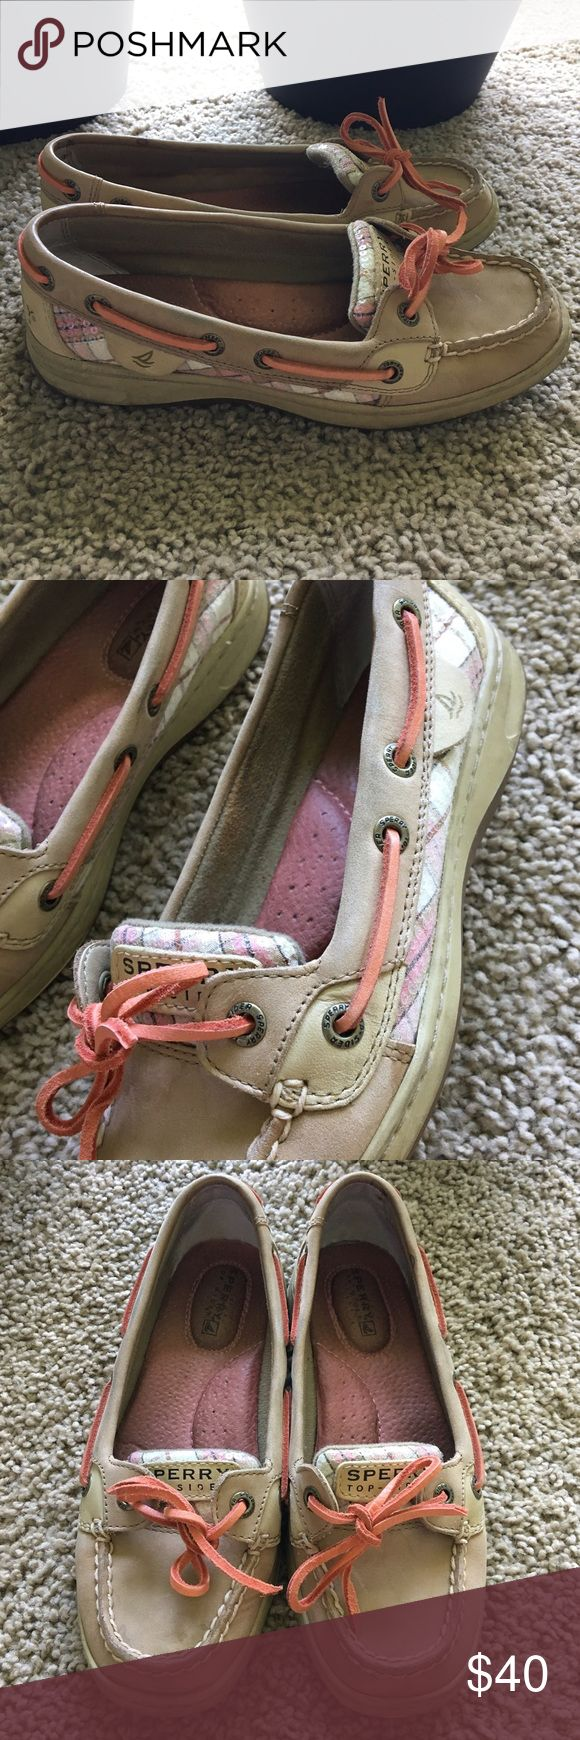 Sperry Boat Shoes size 5 Sperry Boat Shoes, classic camel leather with coral pink and white details, sequins on the tongue and the side. Size 5 M. Great condition! Sperry Shoes